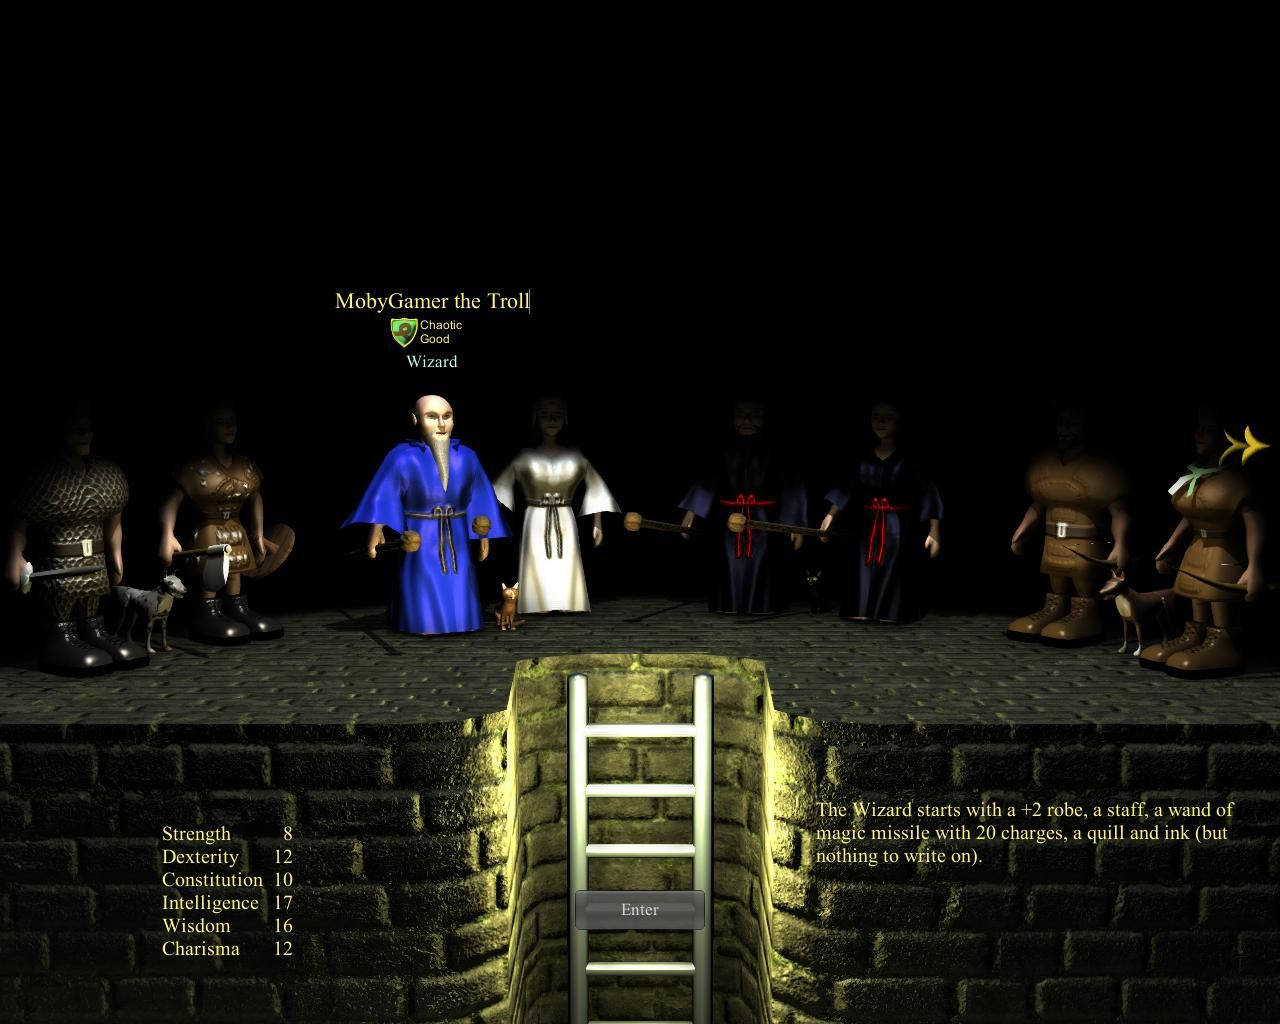 WazHack Windows Character selection - From left to right: Knight (m), Valkyrie (f), Wizard (m), White Witch (f), Sorcerer (m), Sorceress (f), Huntsman (m), and Huntress (f).